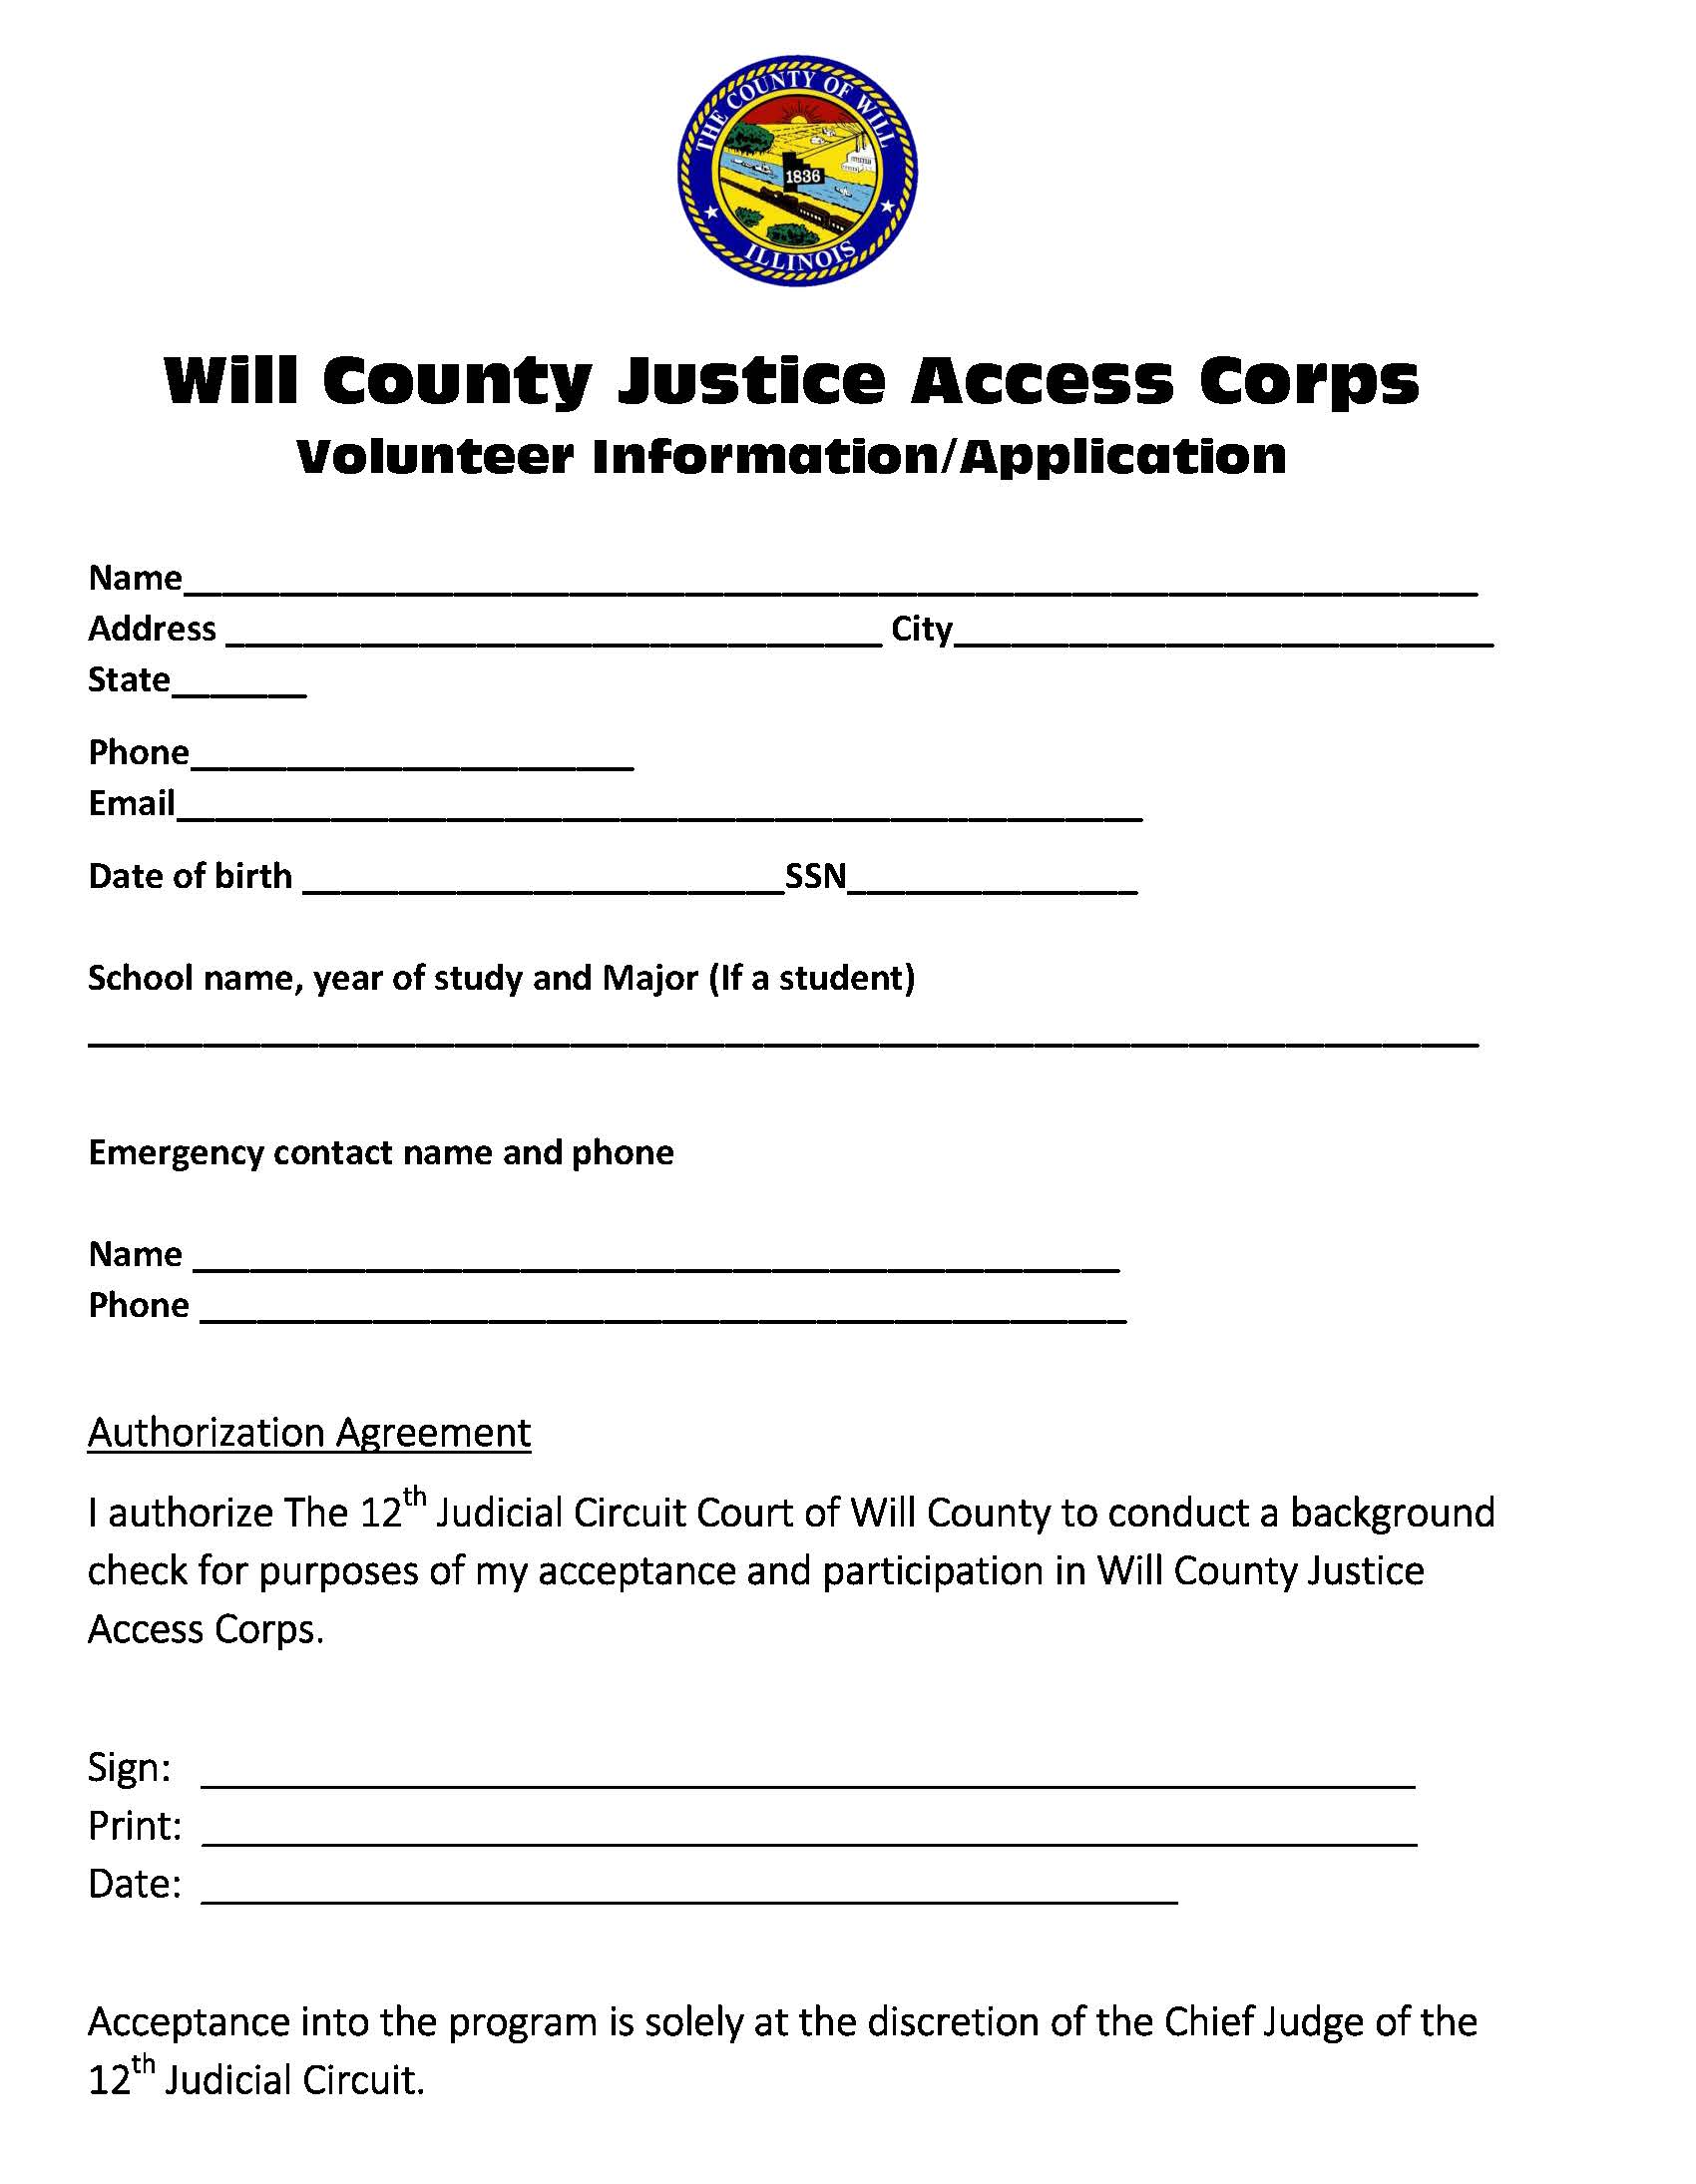 WillCoJAC 2018 Volunteer Application